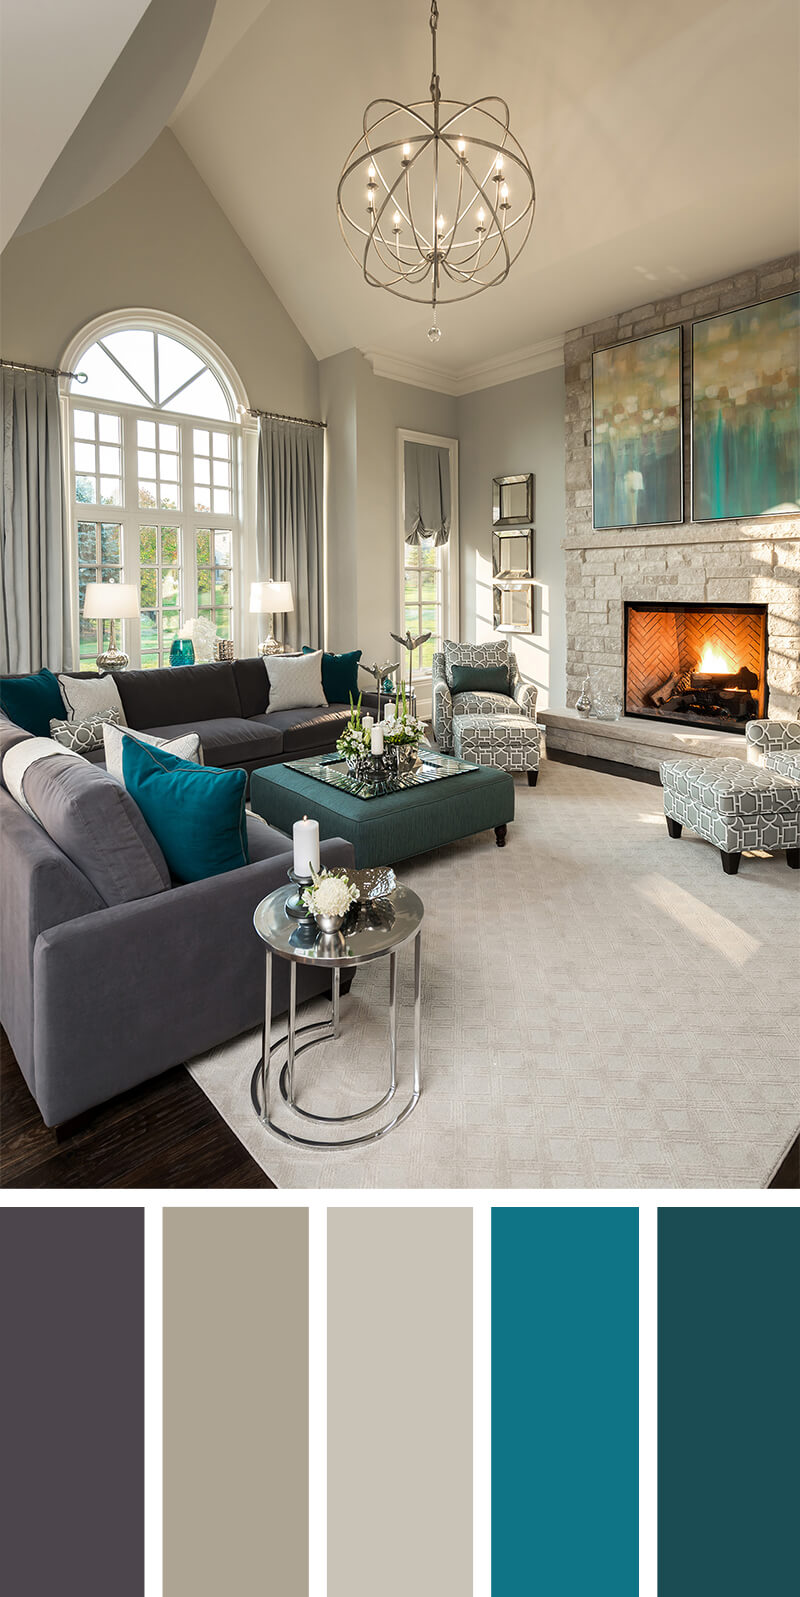 7 Living Room Color Schemes That Will Make Your Space Look Professionally Des